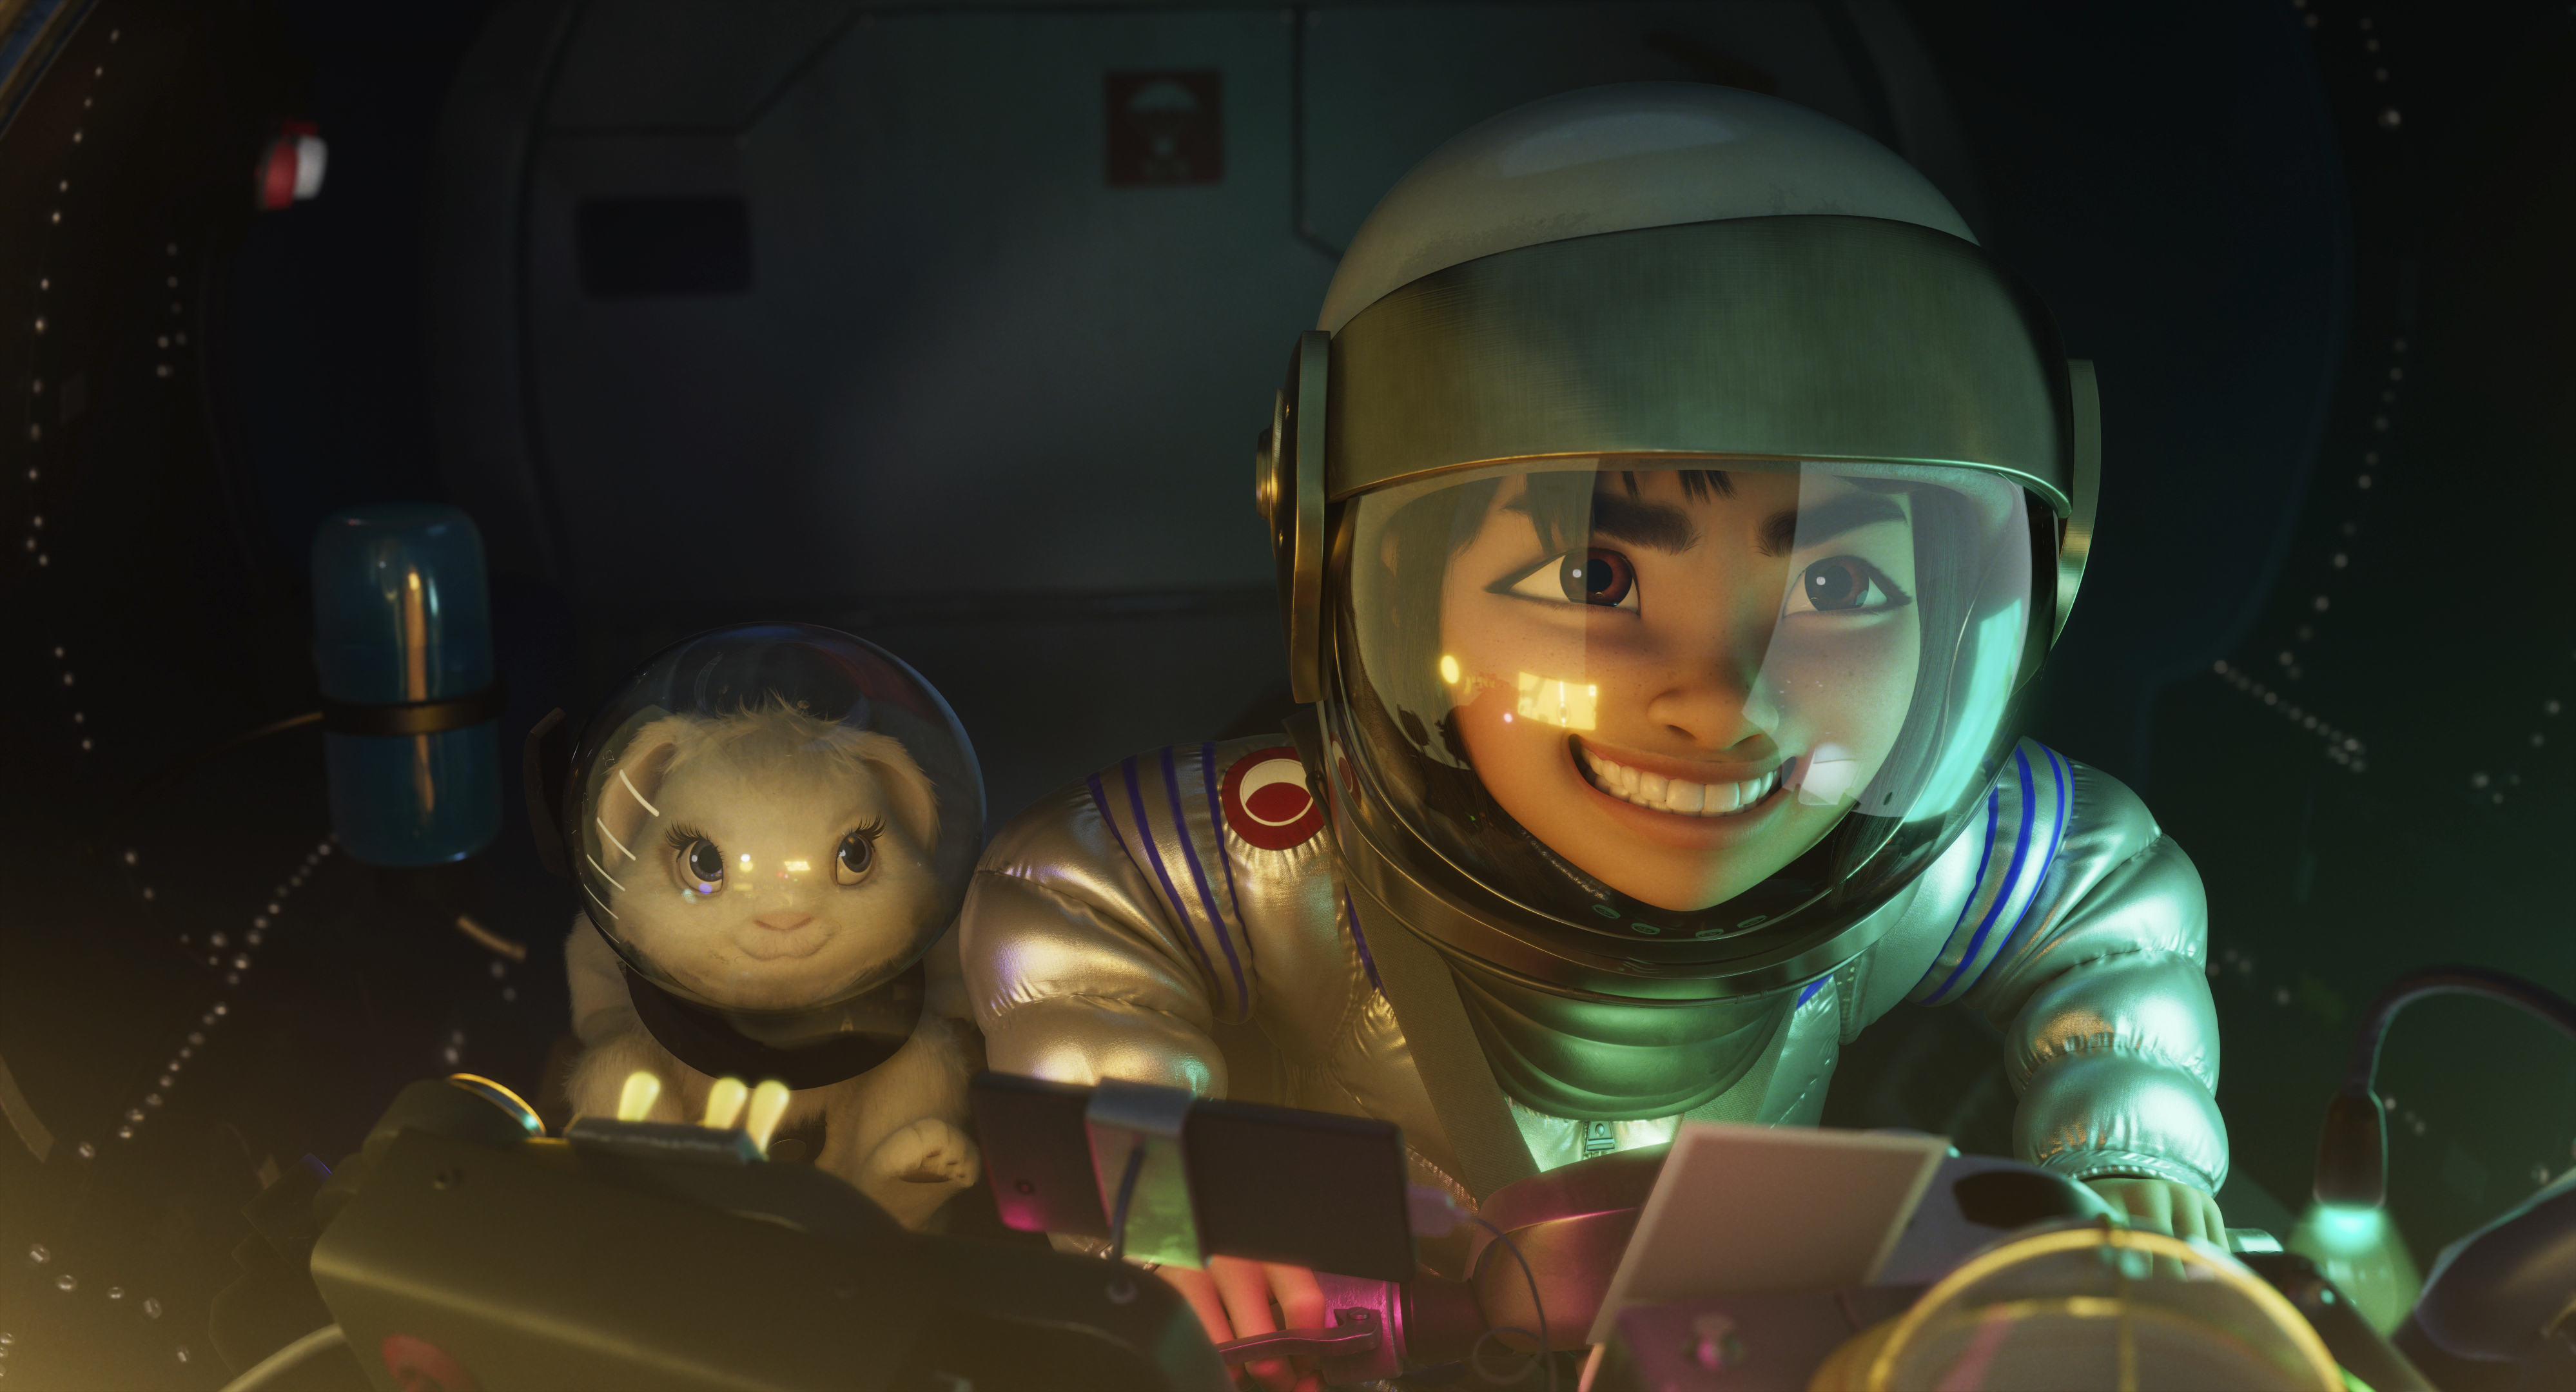 """Bungee the rabbit (left) and Fei Fei (voiced by Cathy Ang) head for outer space in the animated musical """"Over the Moon."""""""